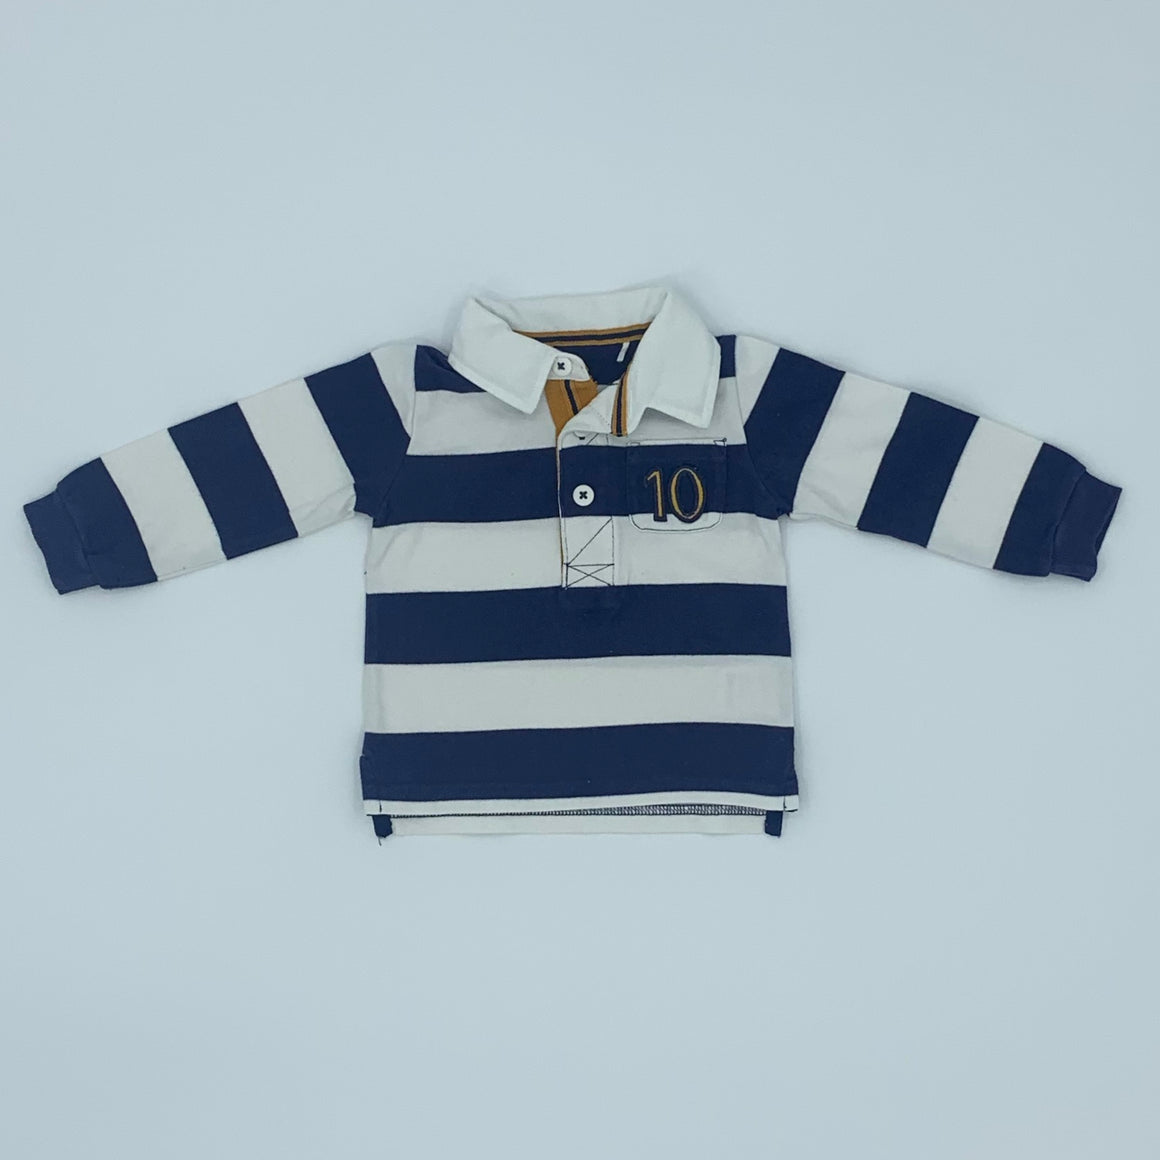 Gently Worn John Lewis rugby top size 6-9 months